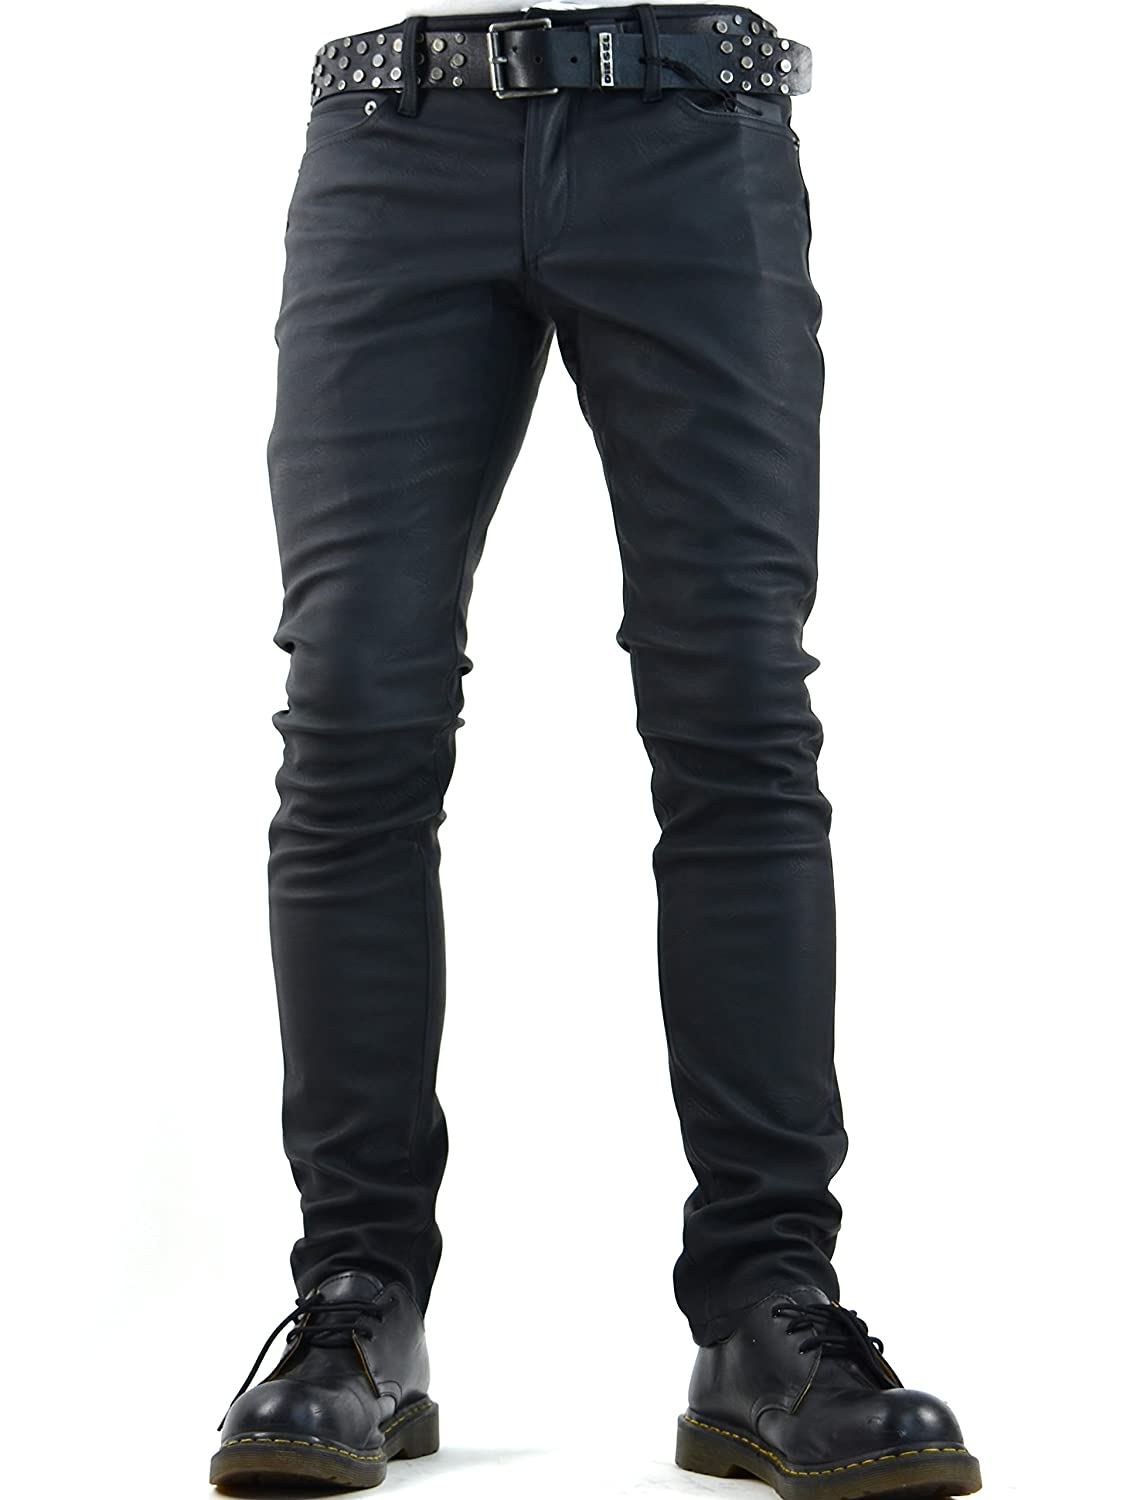 Gothic Rocker Faux Leather PVC Vinyl Jeans Pants